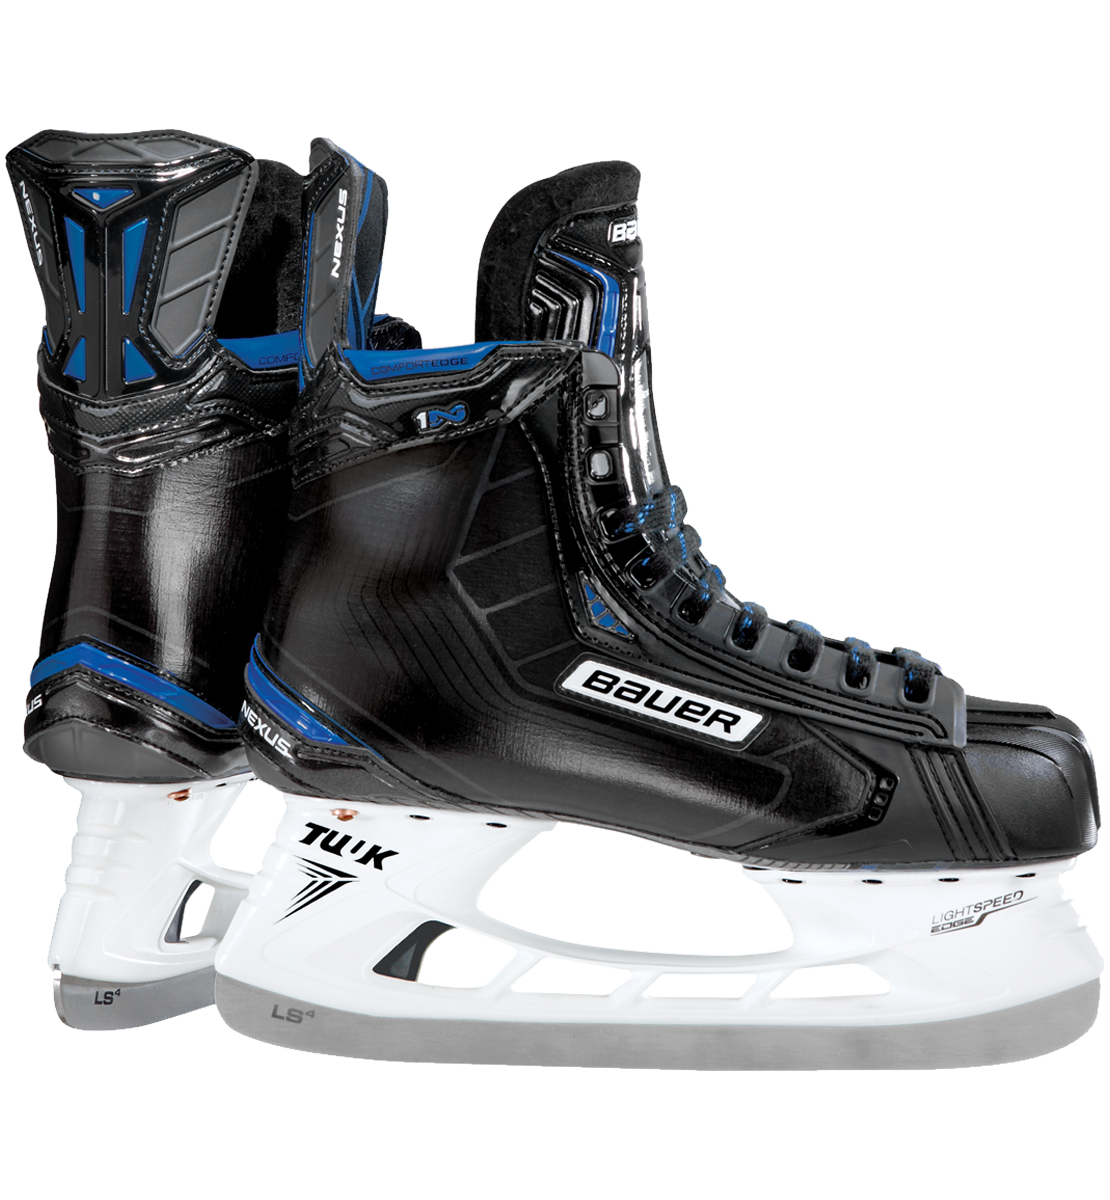 Hockey Skates PNG